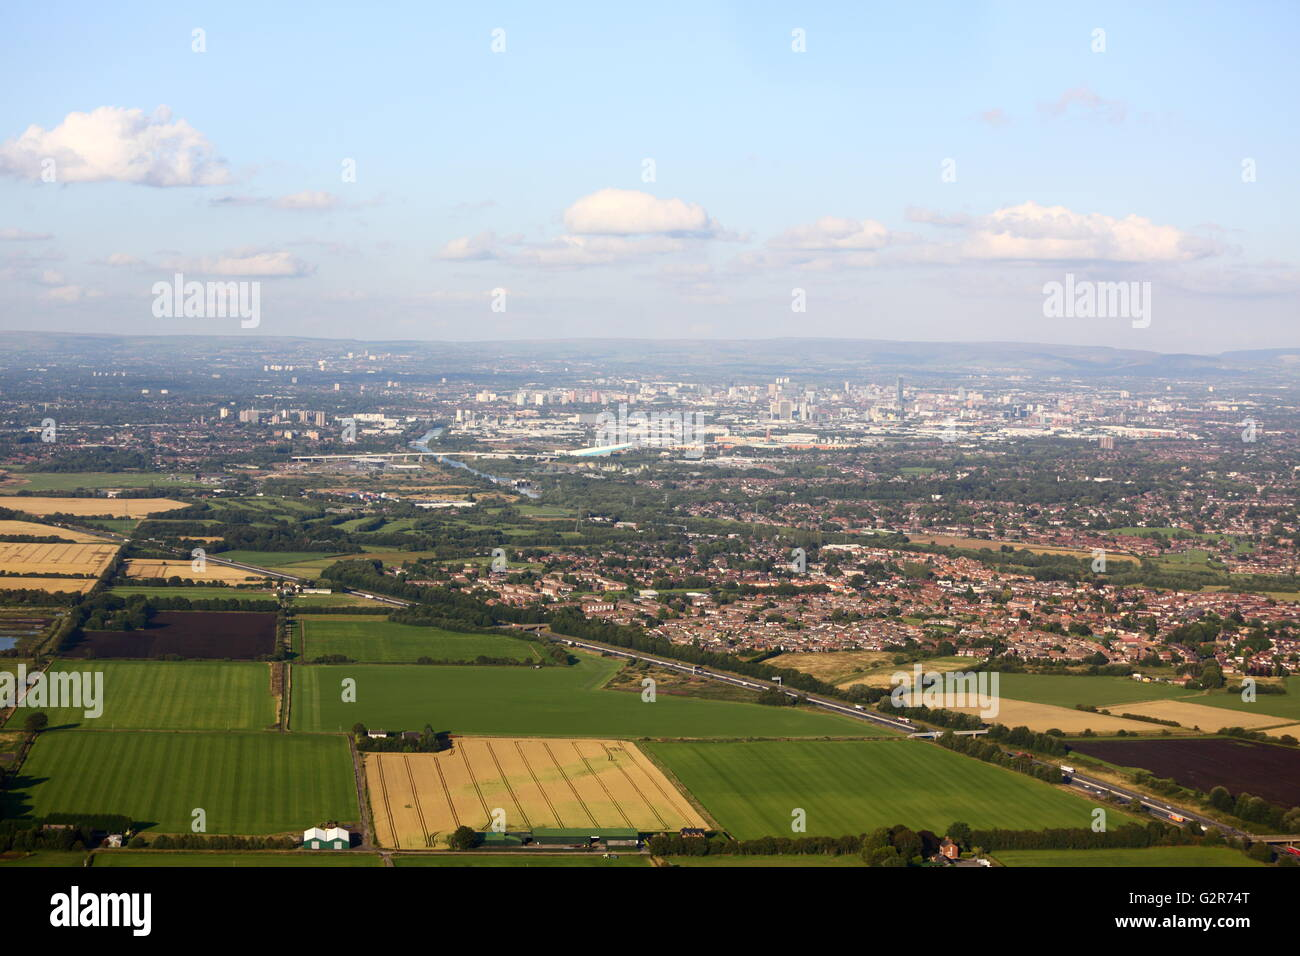 Aerial view of Manchester - Stock Image